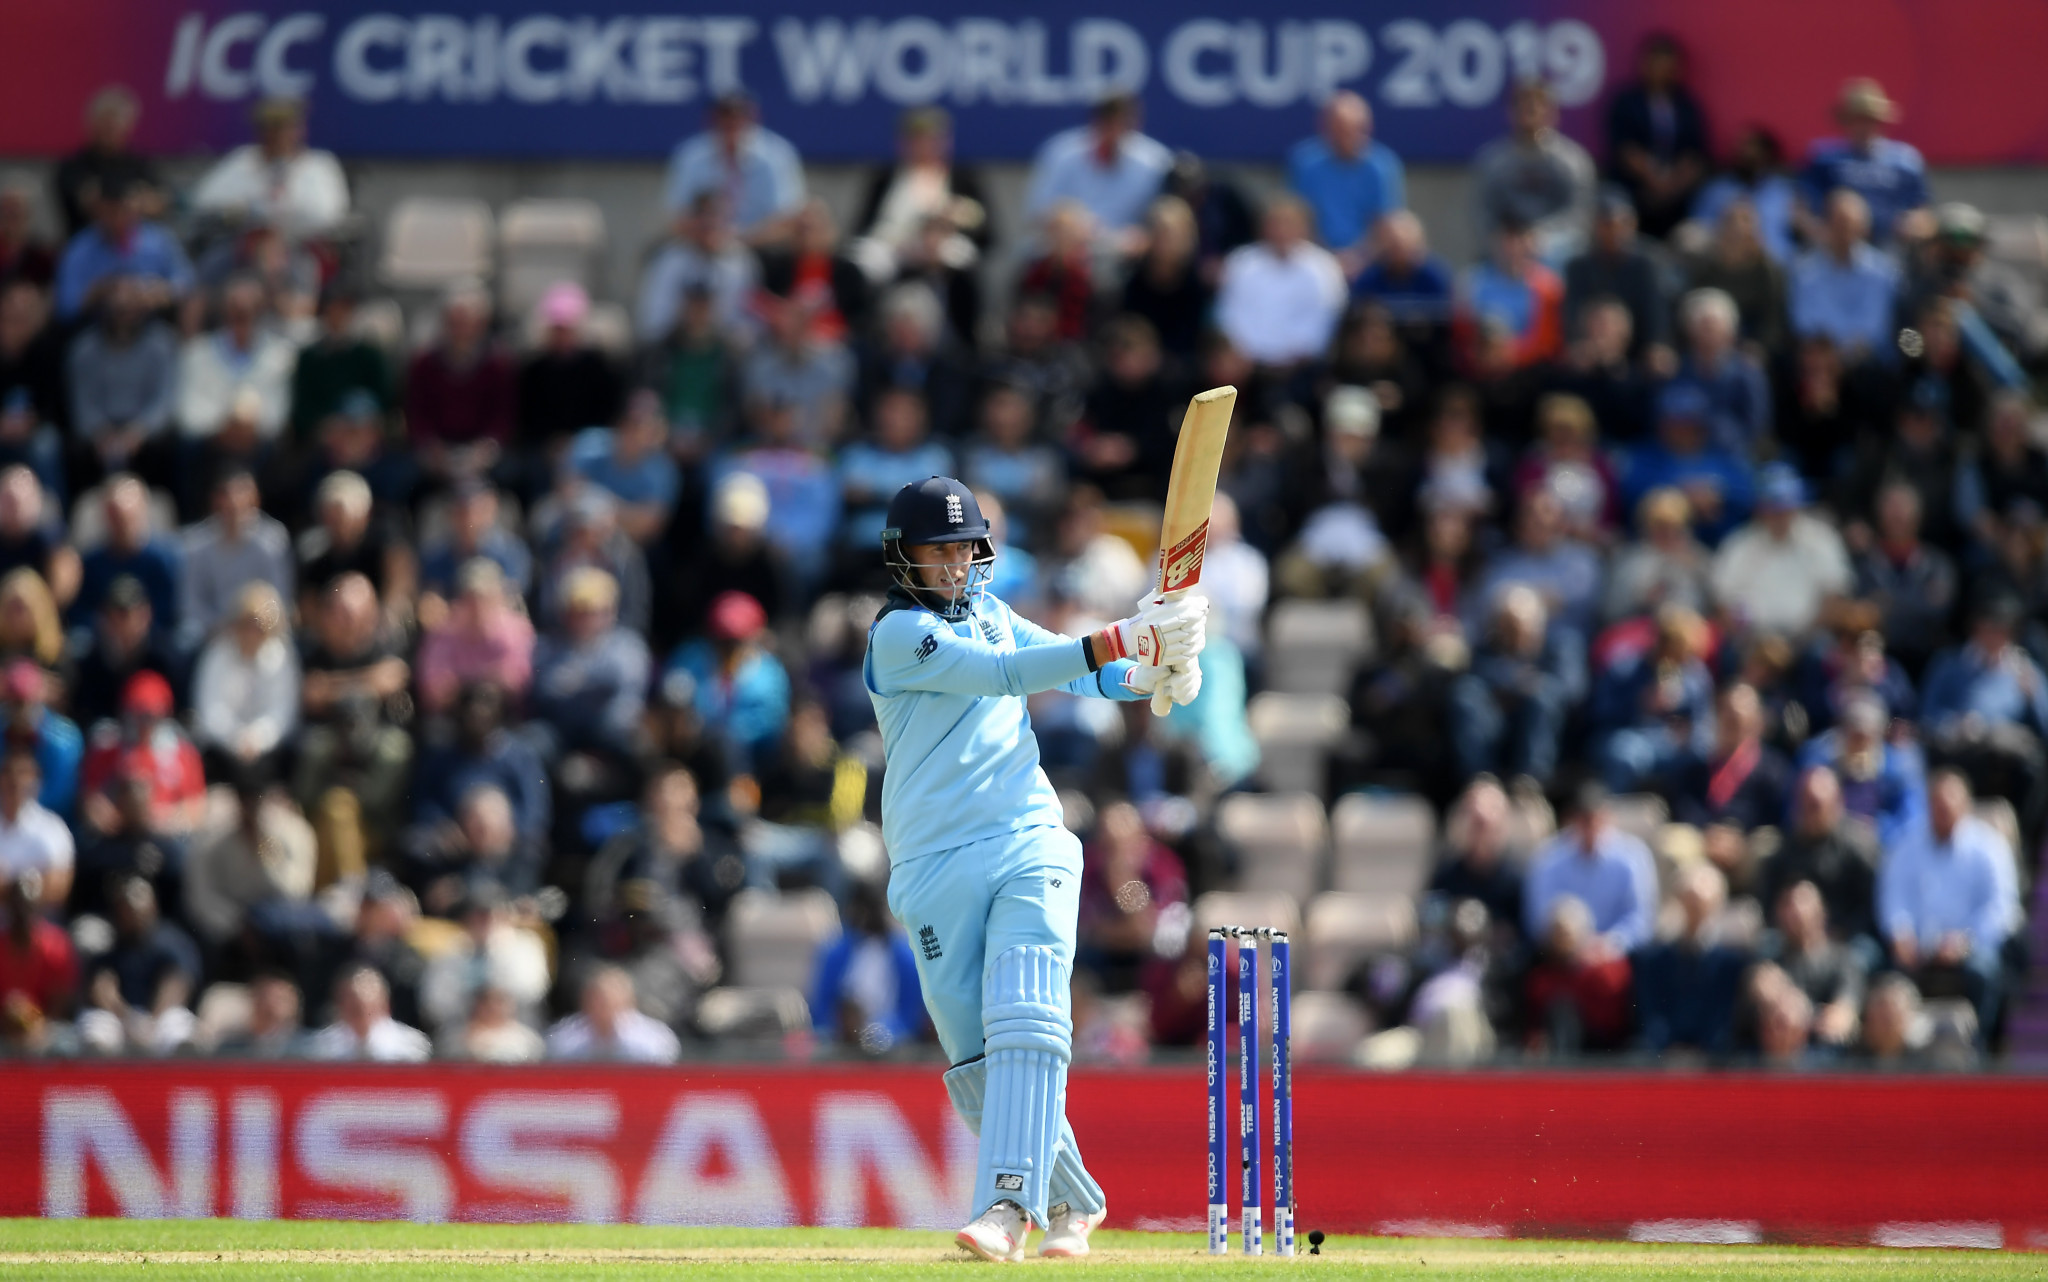 Joe Root hit his second century of the World Cup as England thrashed West Indies ©Getty Images